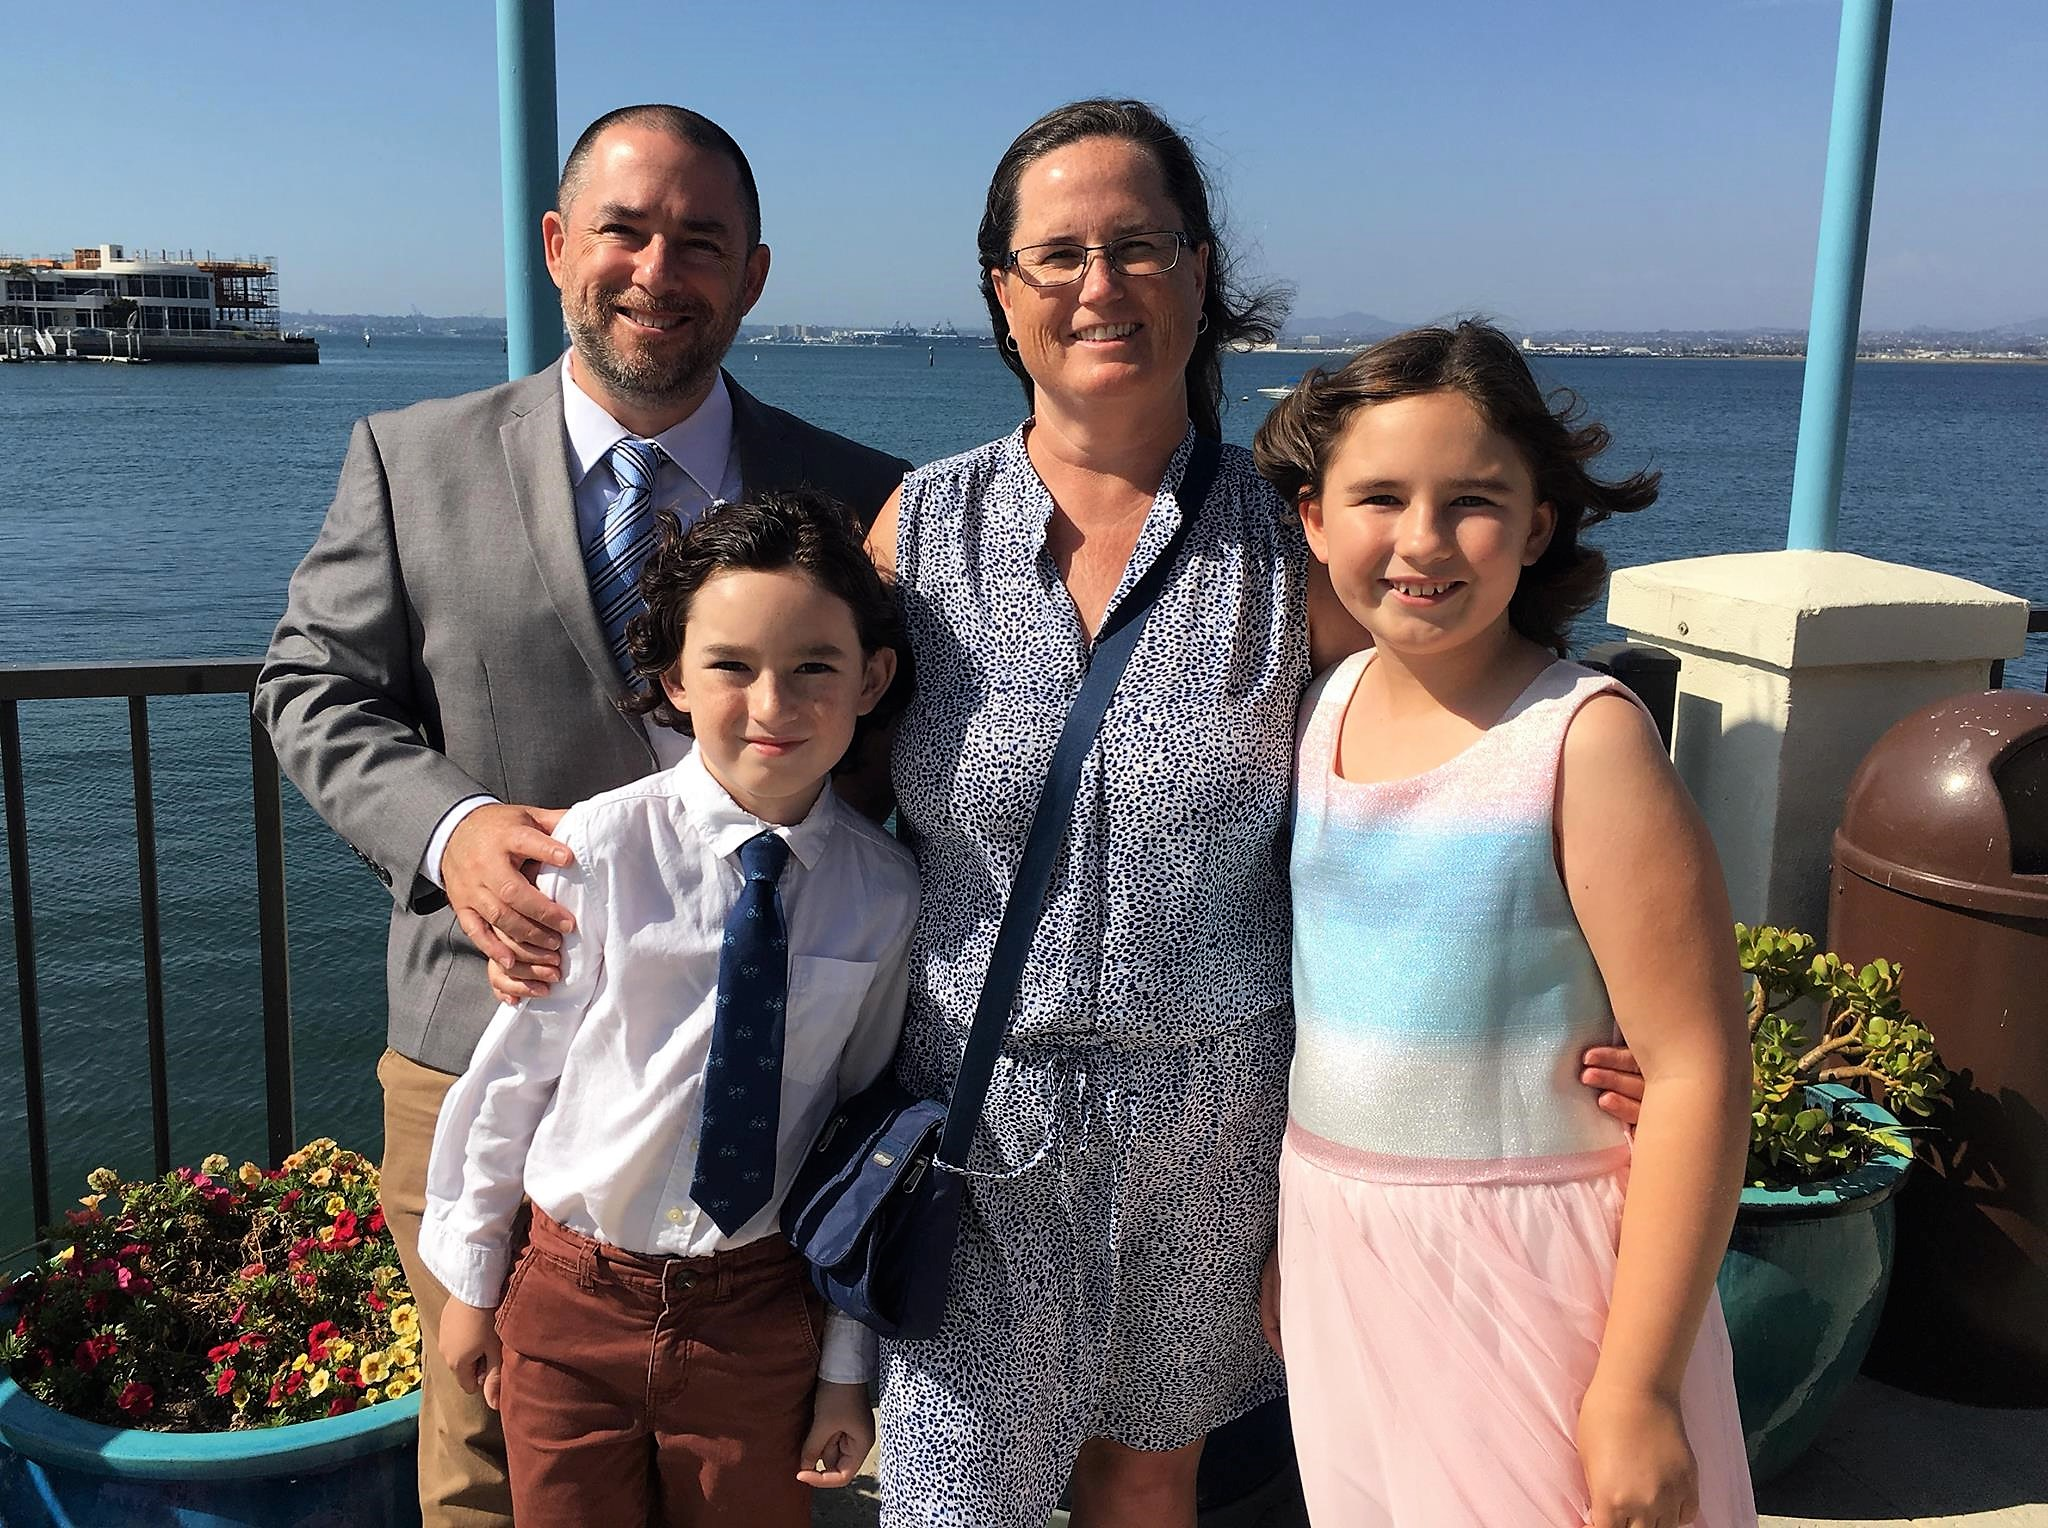 Trip Report: 2018 San Diego Family Wedding